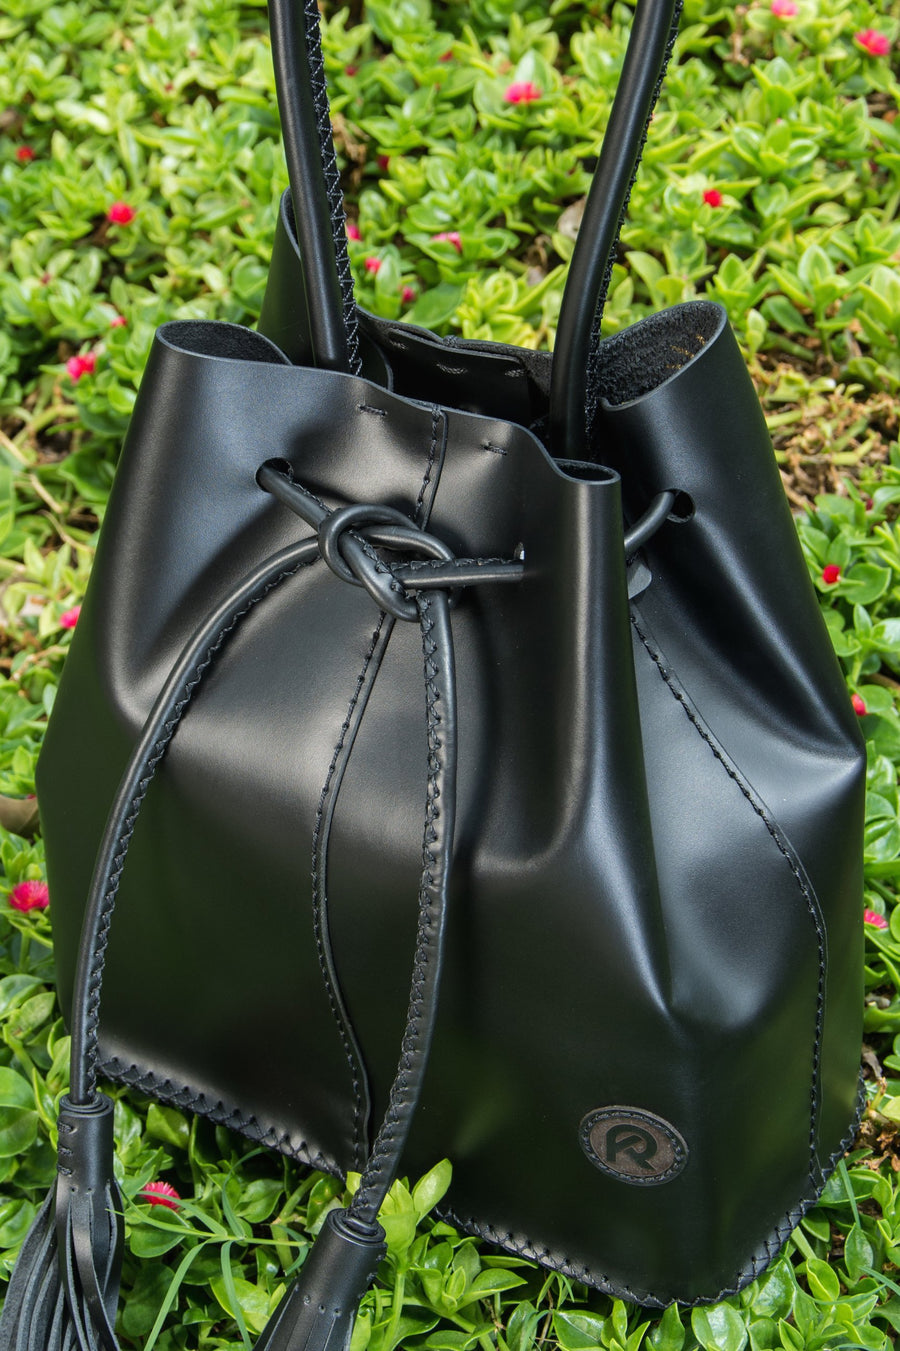 Bella Pizzazz, Black Bucket Bag, Handmade & Hand-Stitched, 100% Leather - TheMakerWorld